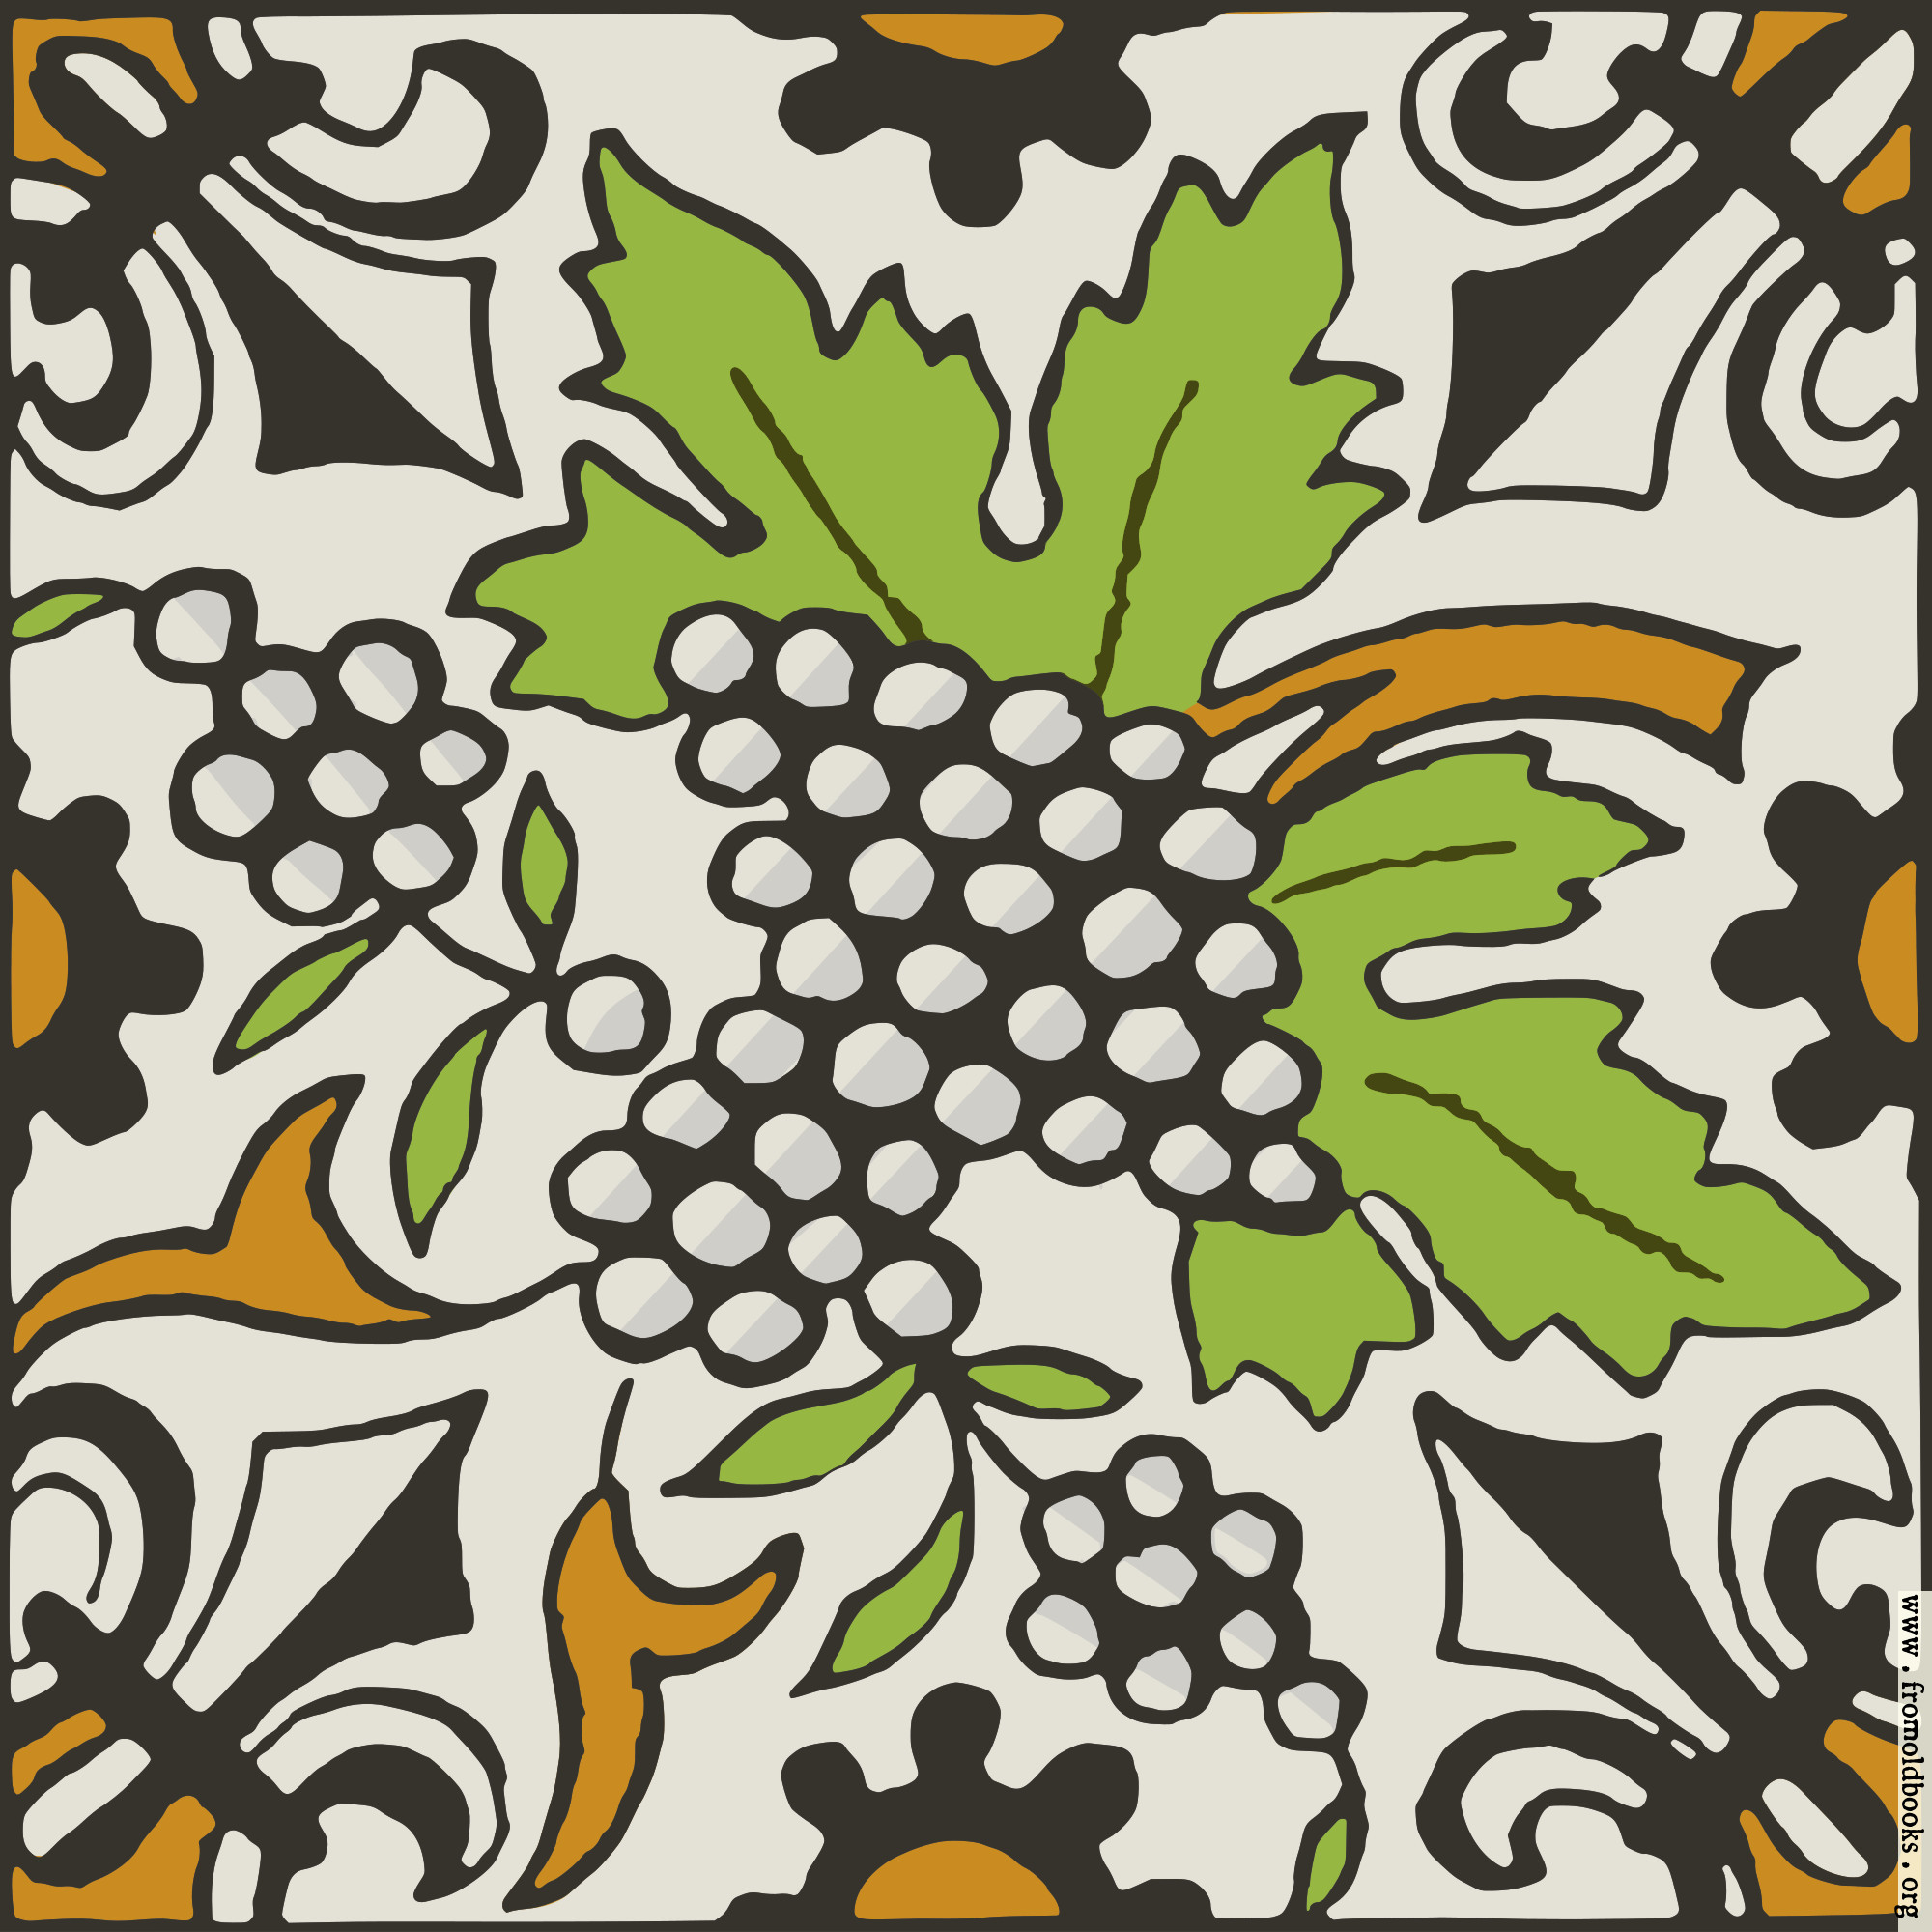 Dutch delft ceramic tile 28 svg version 2000x2000 498k jpg free download dailygadgetfo Image collections